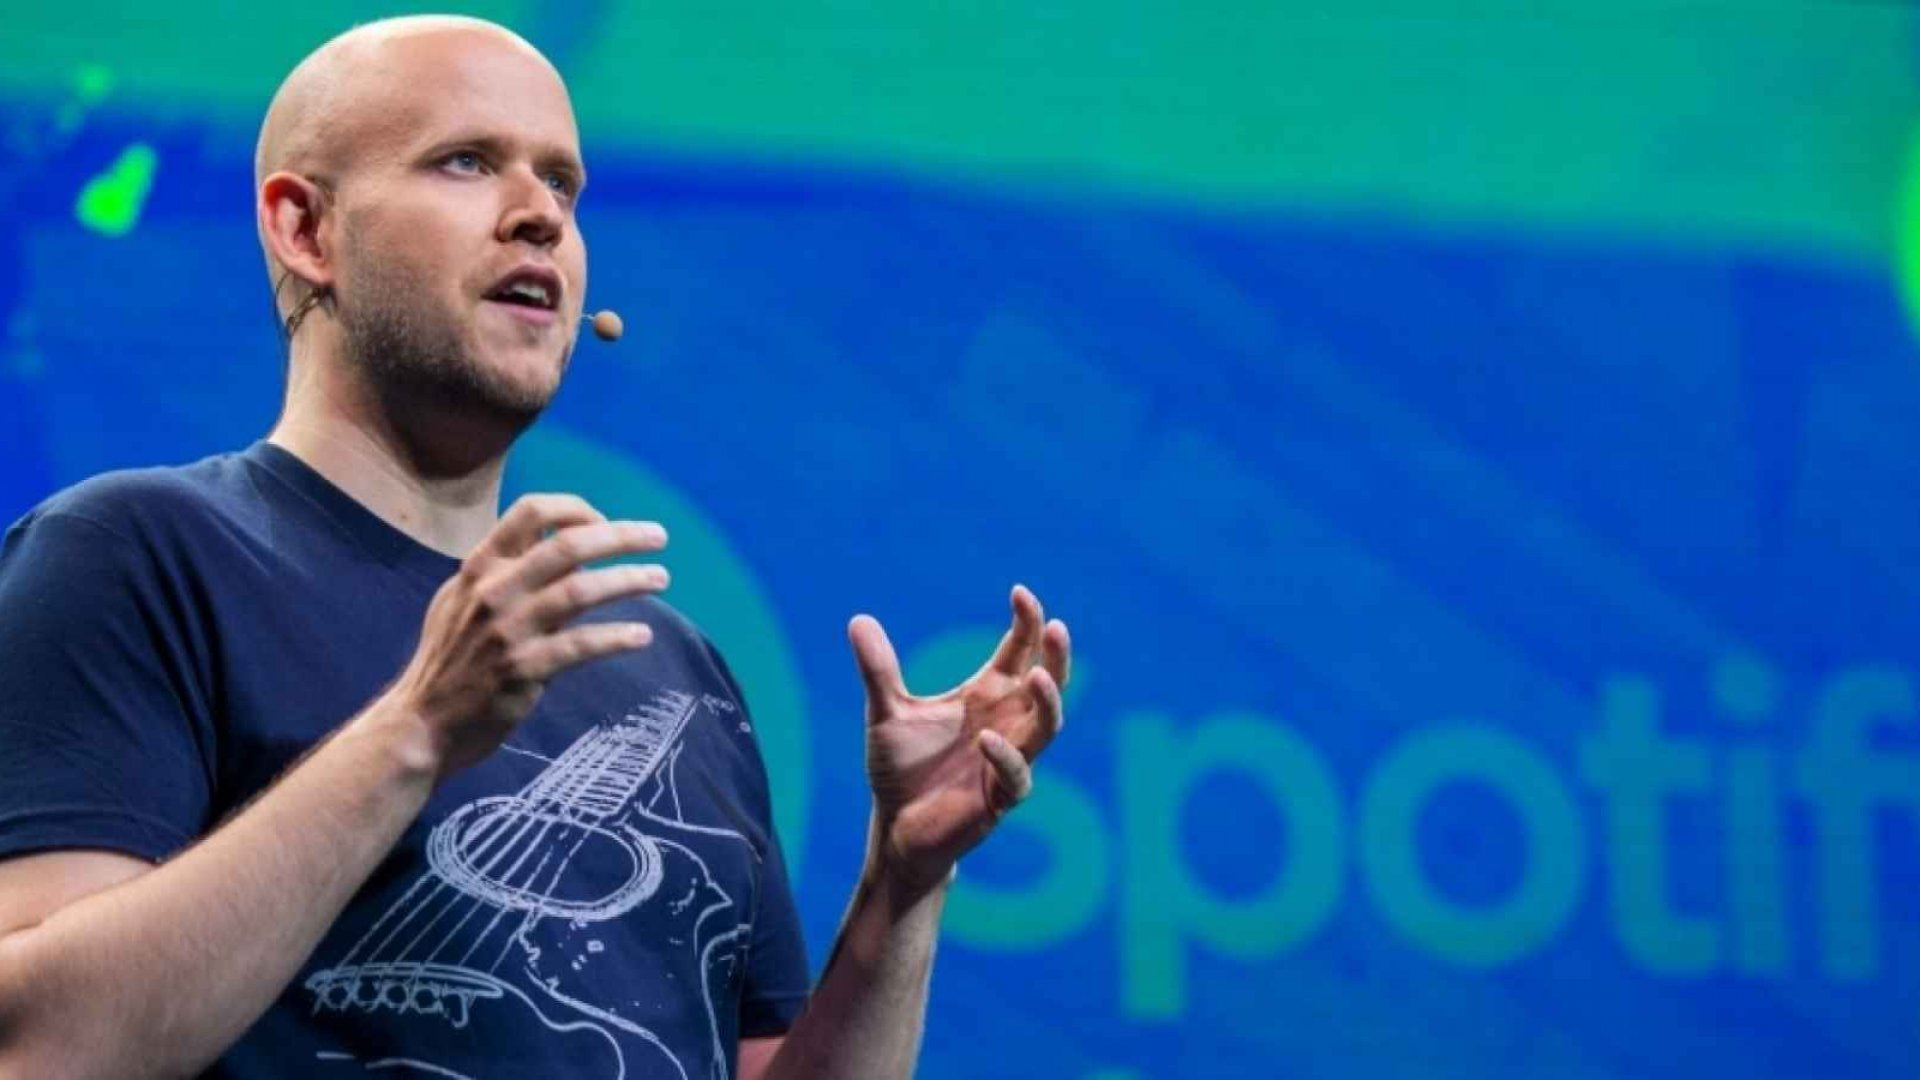 Spotify's Founder Shares the Secrets of the Company's Early Success